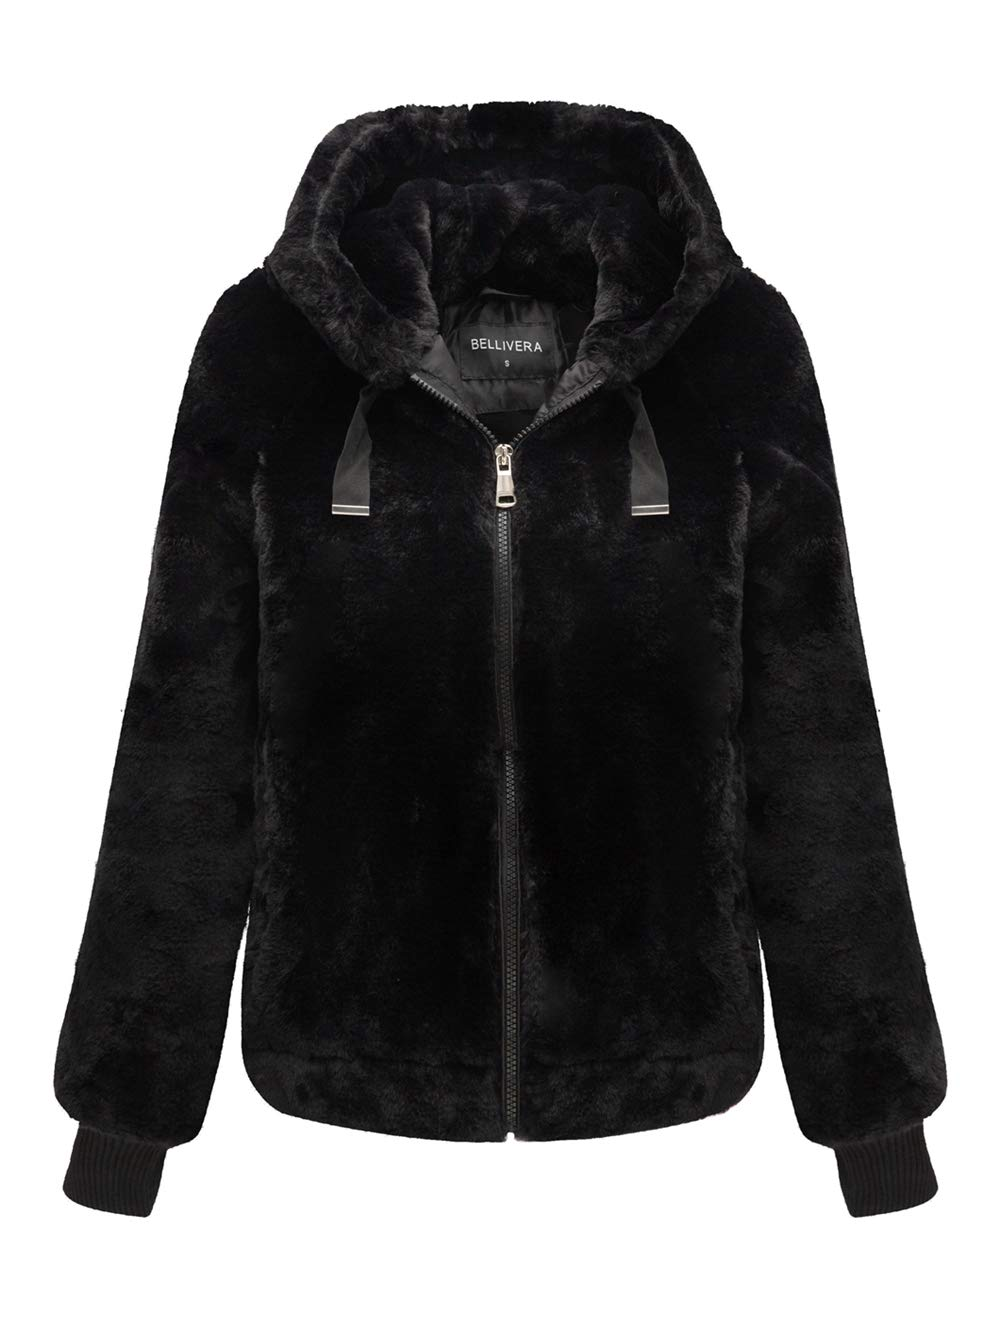 Bellivera Women's Faux Fur Coat with 2 Side-Seam Pockets, The Fuzzy Jacket with Hood, for Spring Fall and Winter by Bellivera